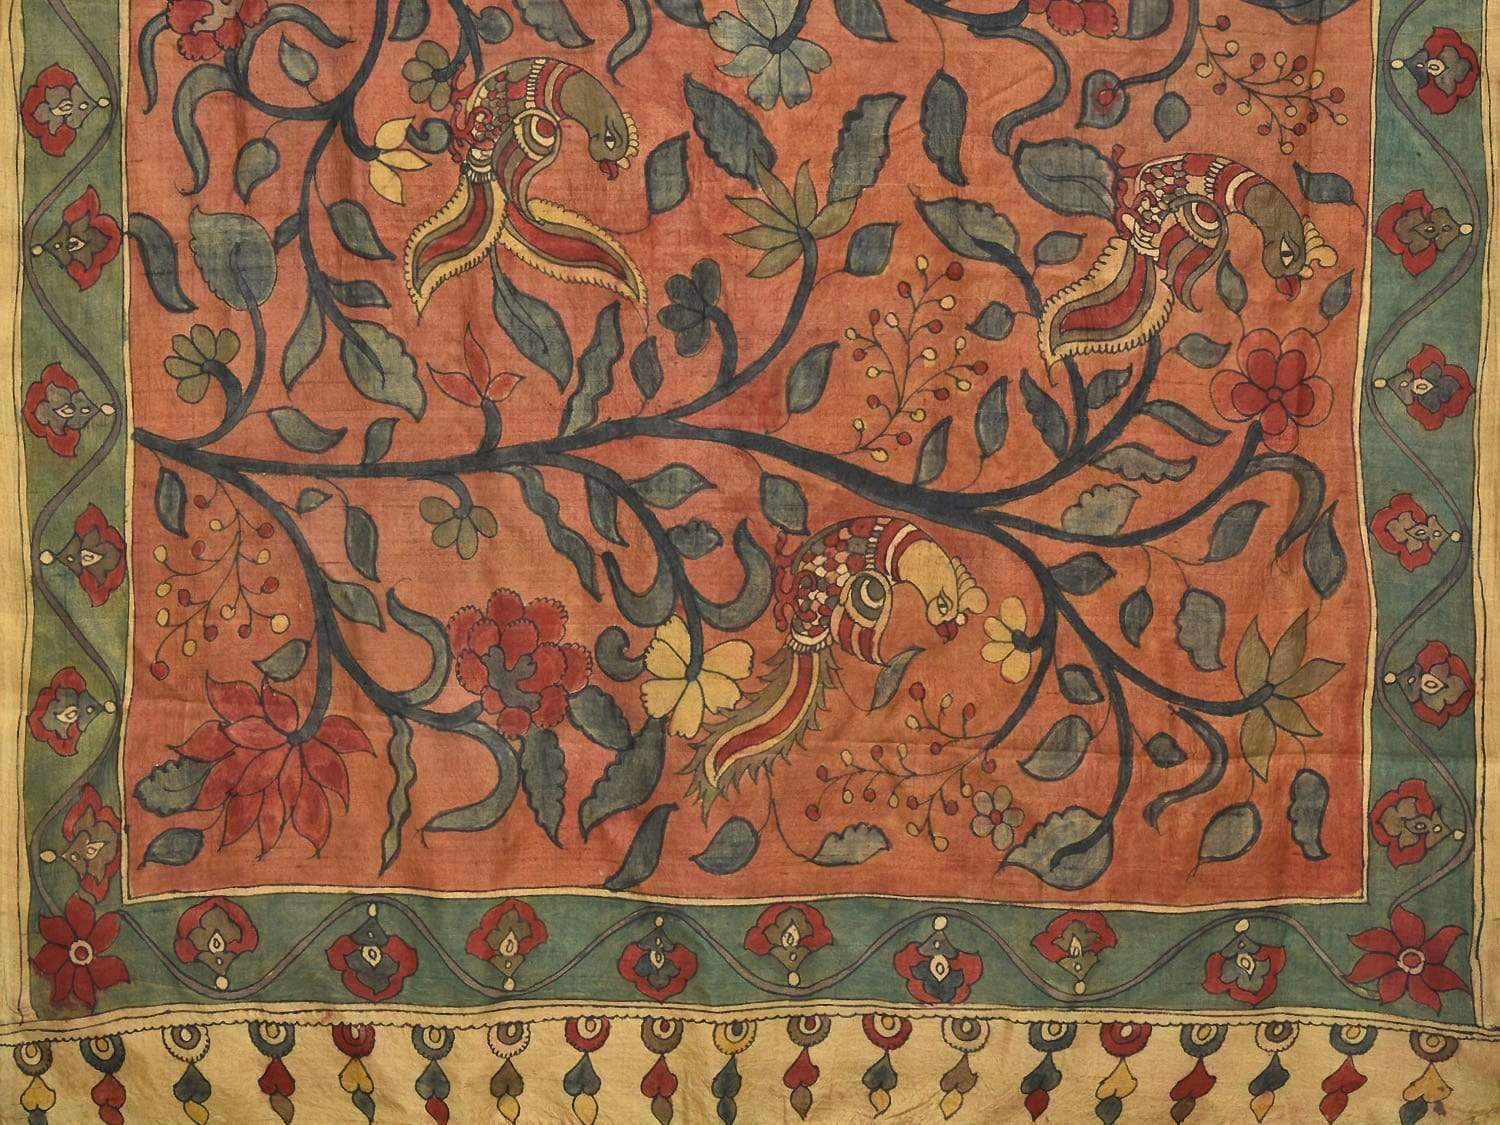 Rust Kalamkari Hand Painted Tussar Silk Handloom Saree with Flowers and Birds Design KL0189